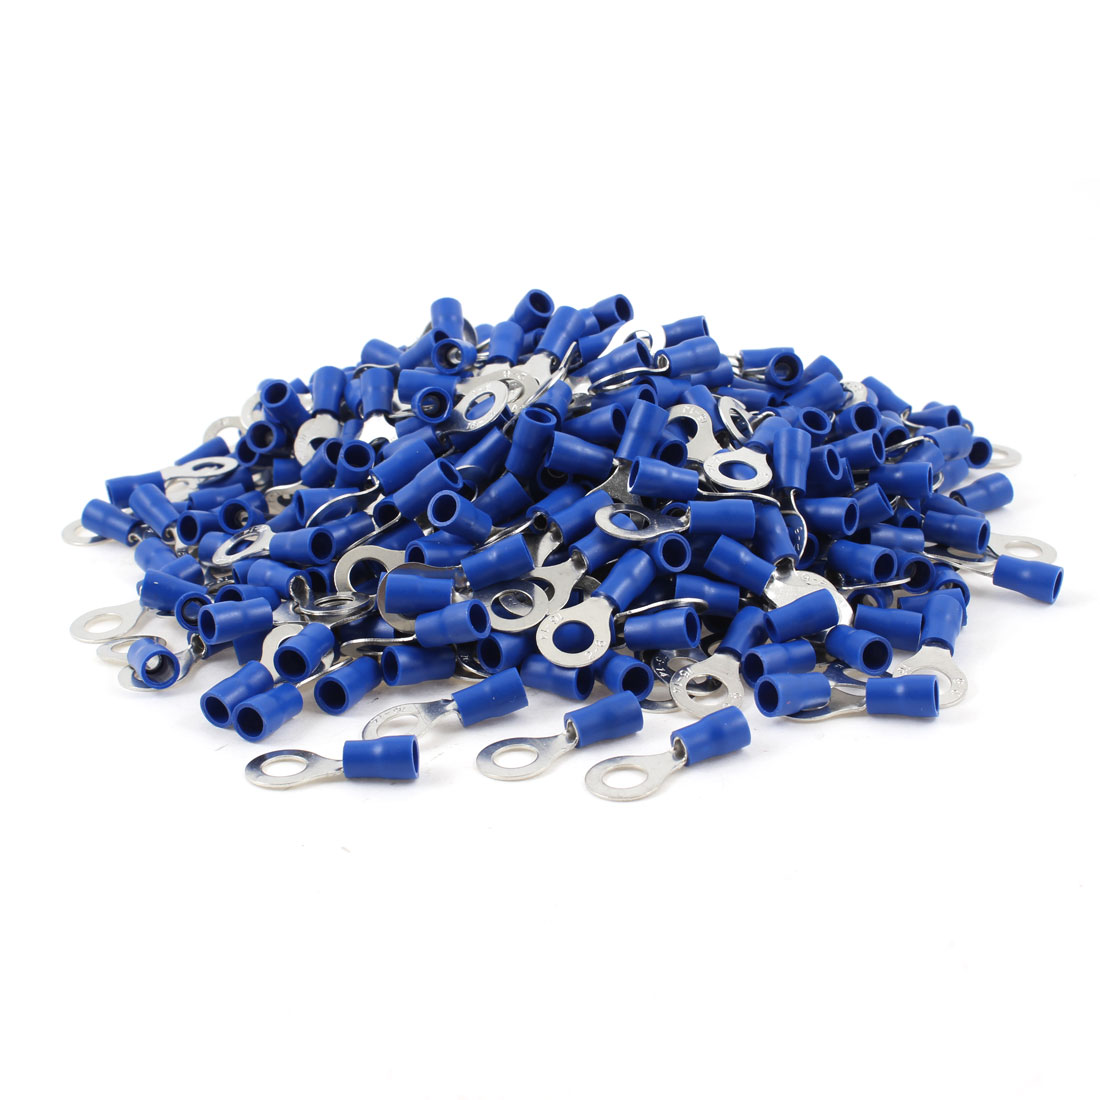 "1000pcs RV2-6 Pre Insulated Ring Terminals Blue for 1/4"" Stud AWG 16-14 Wire"